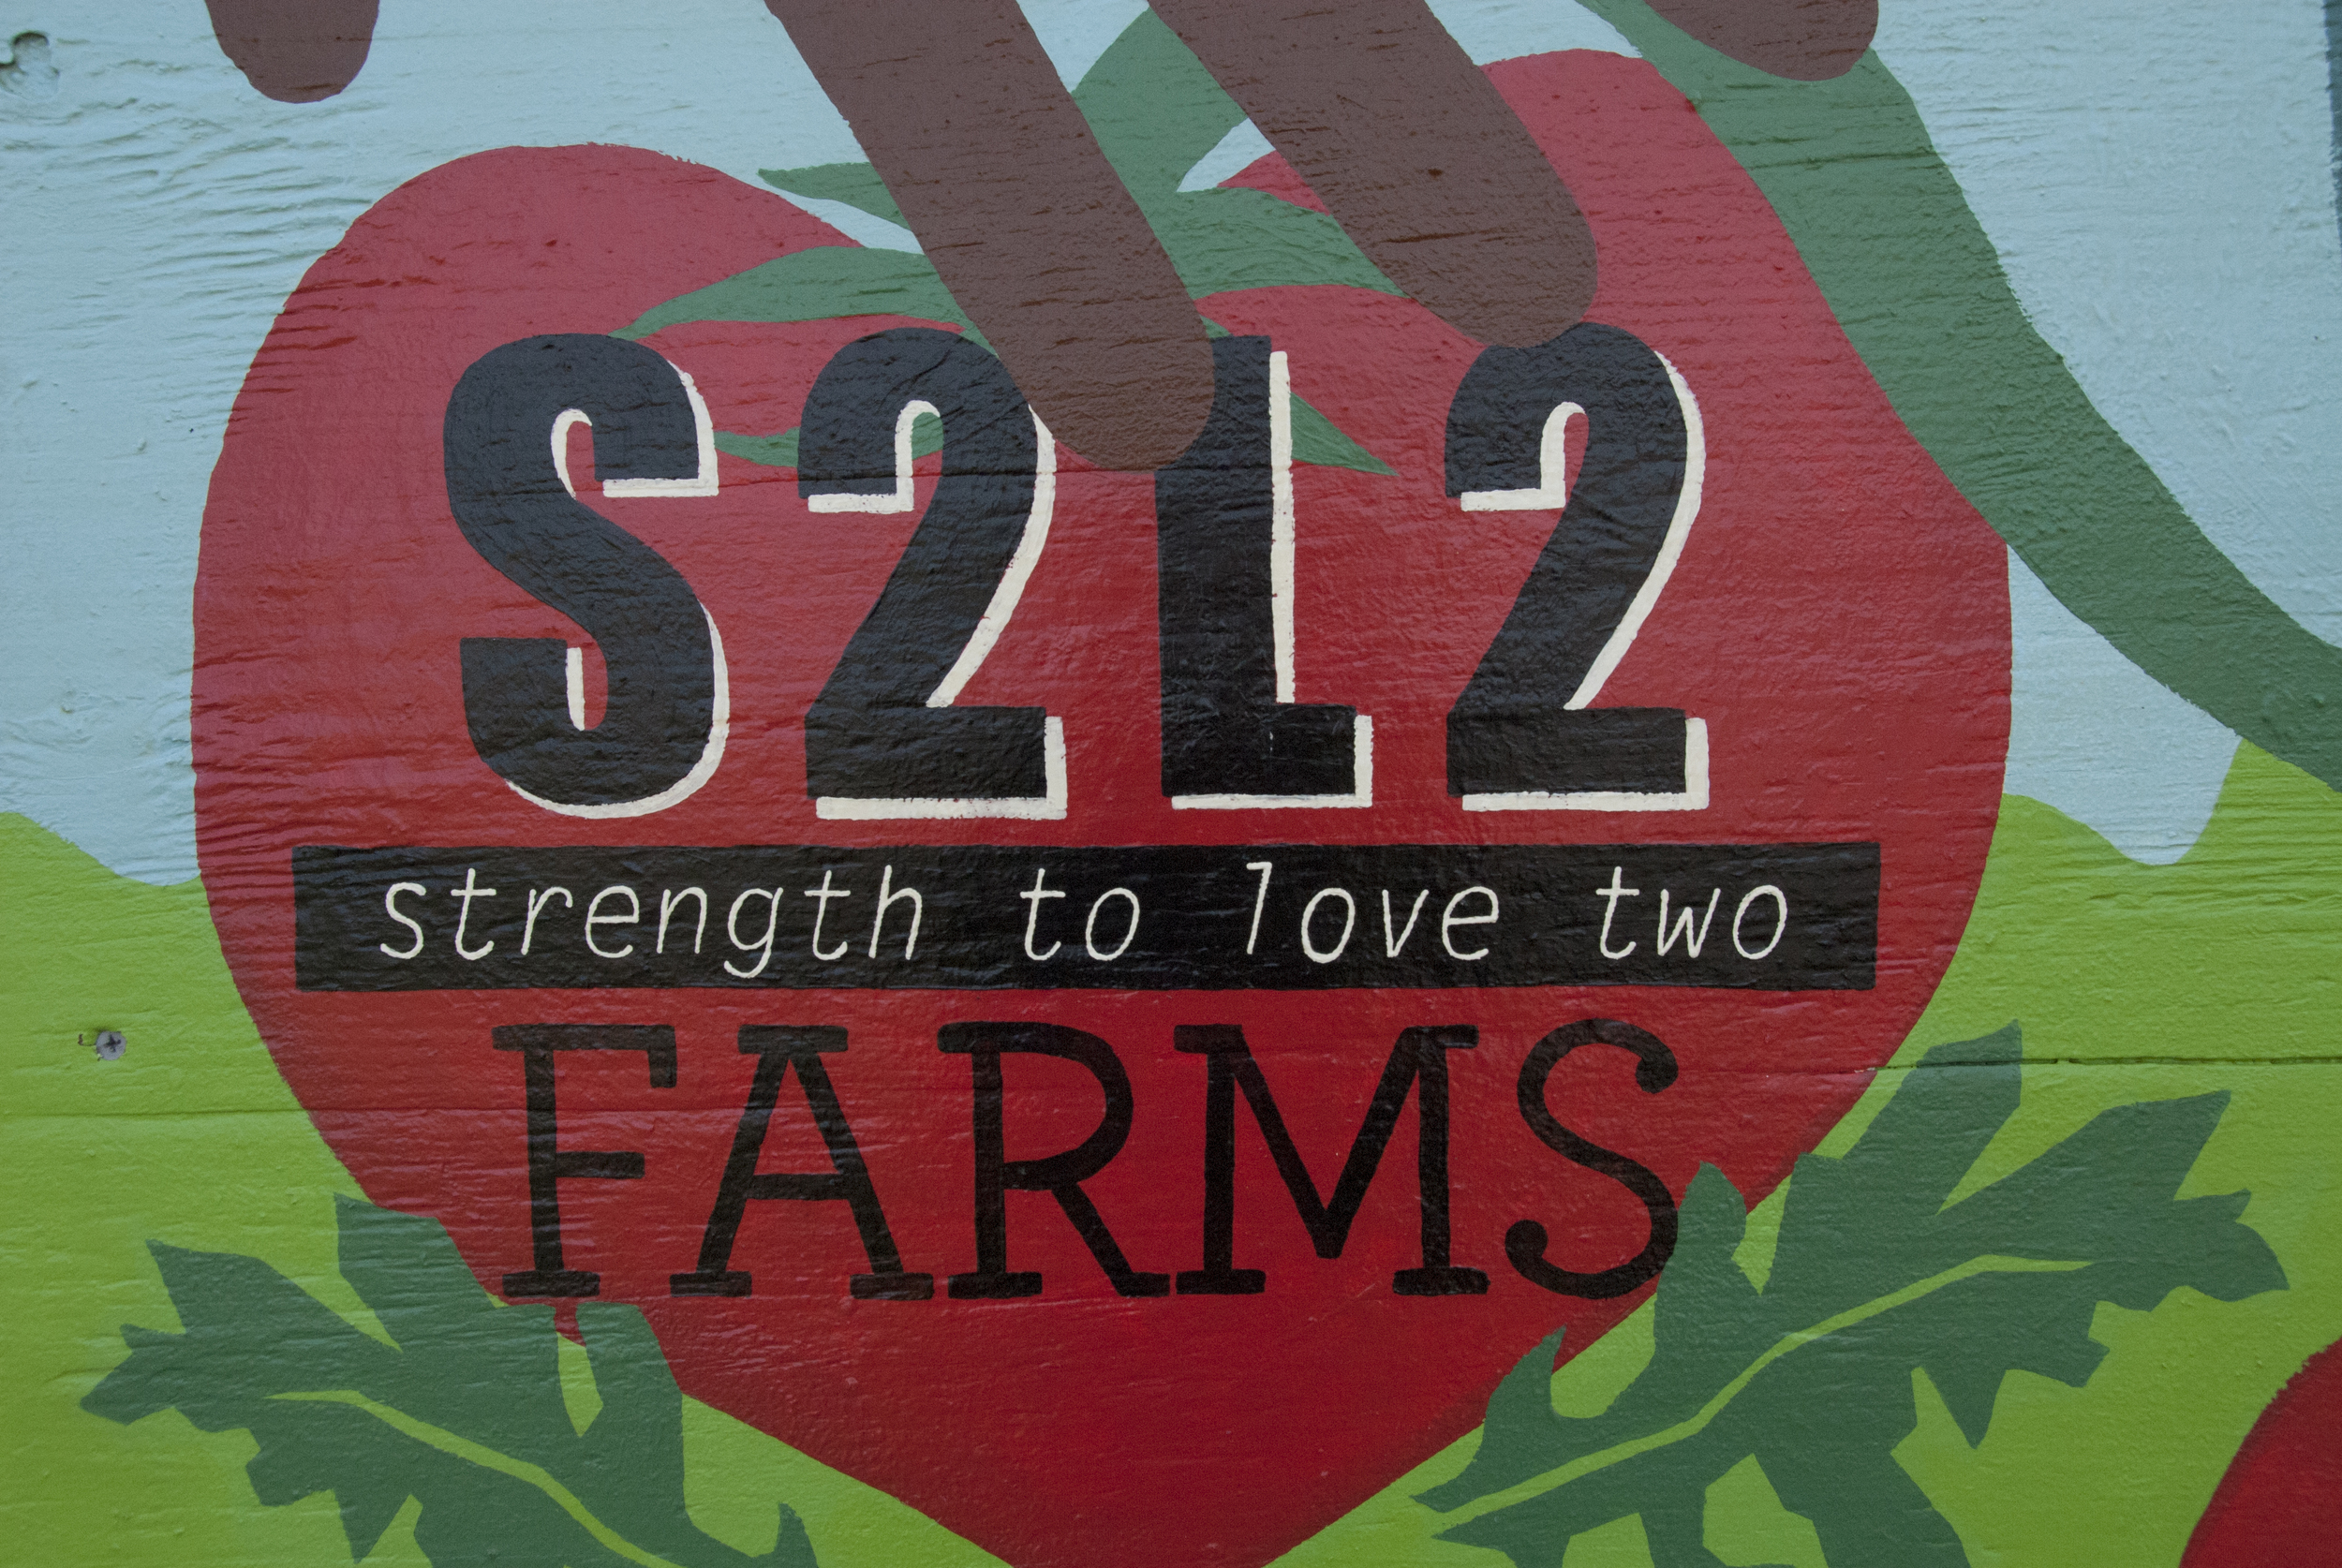 photo credit: Emily Chow Bluck  S2L2 Farms logo designed by: Emily Chow Bluck